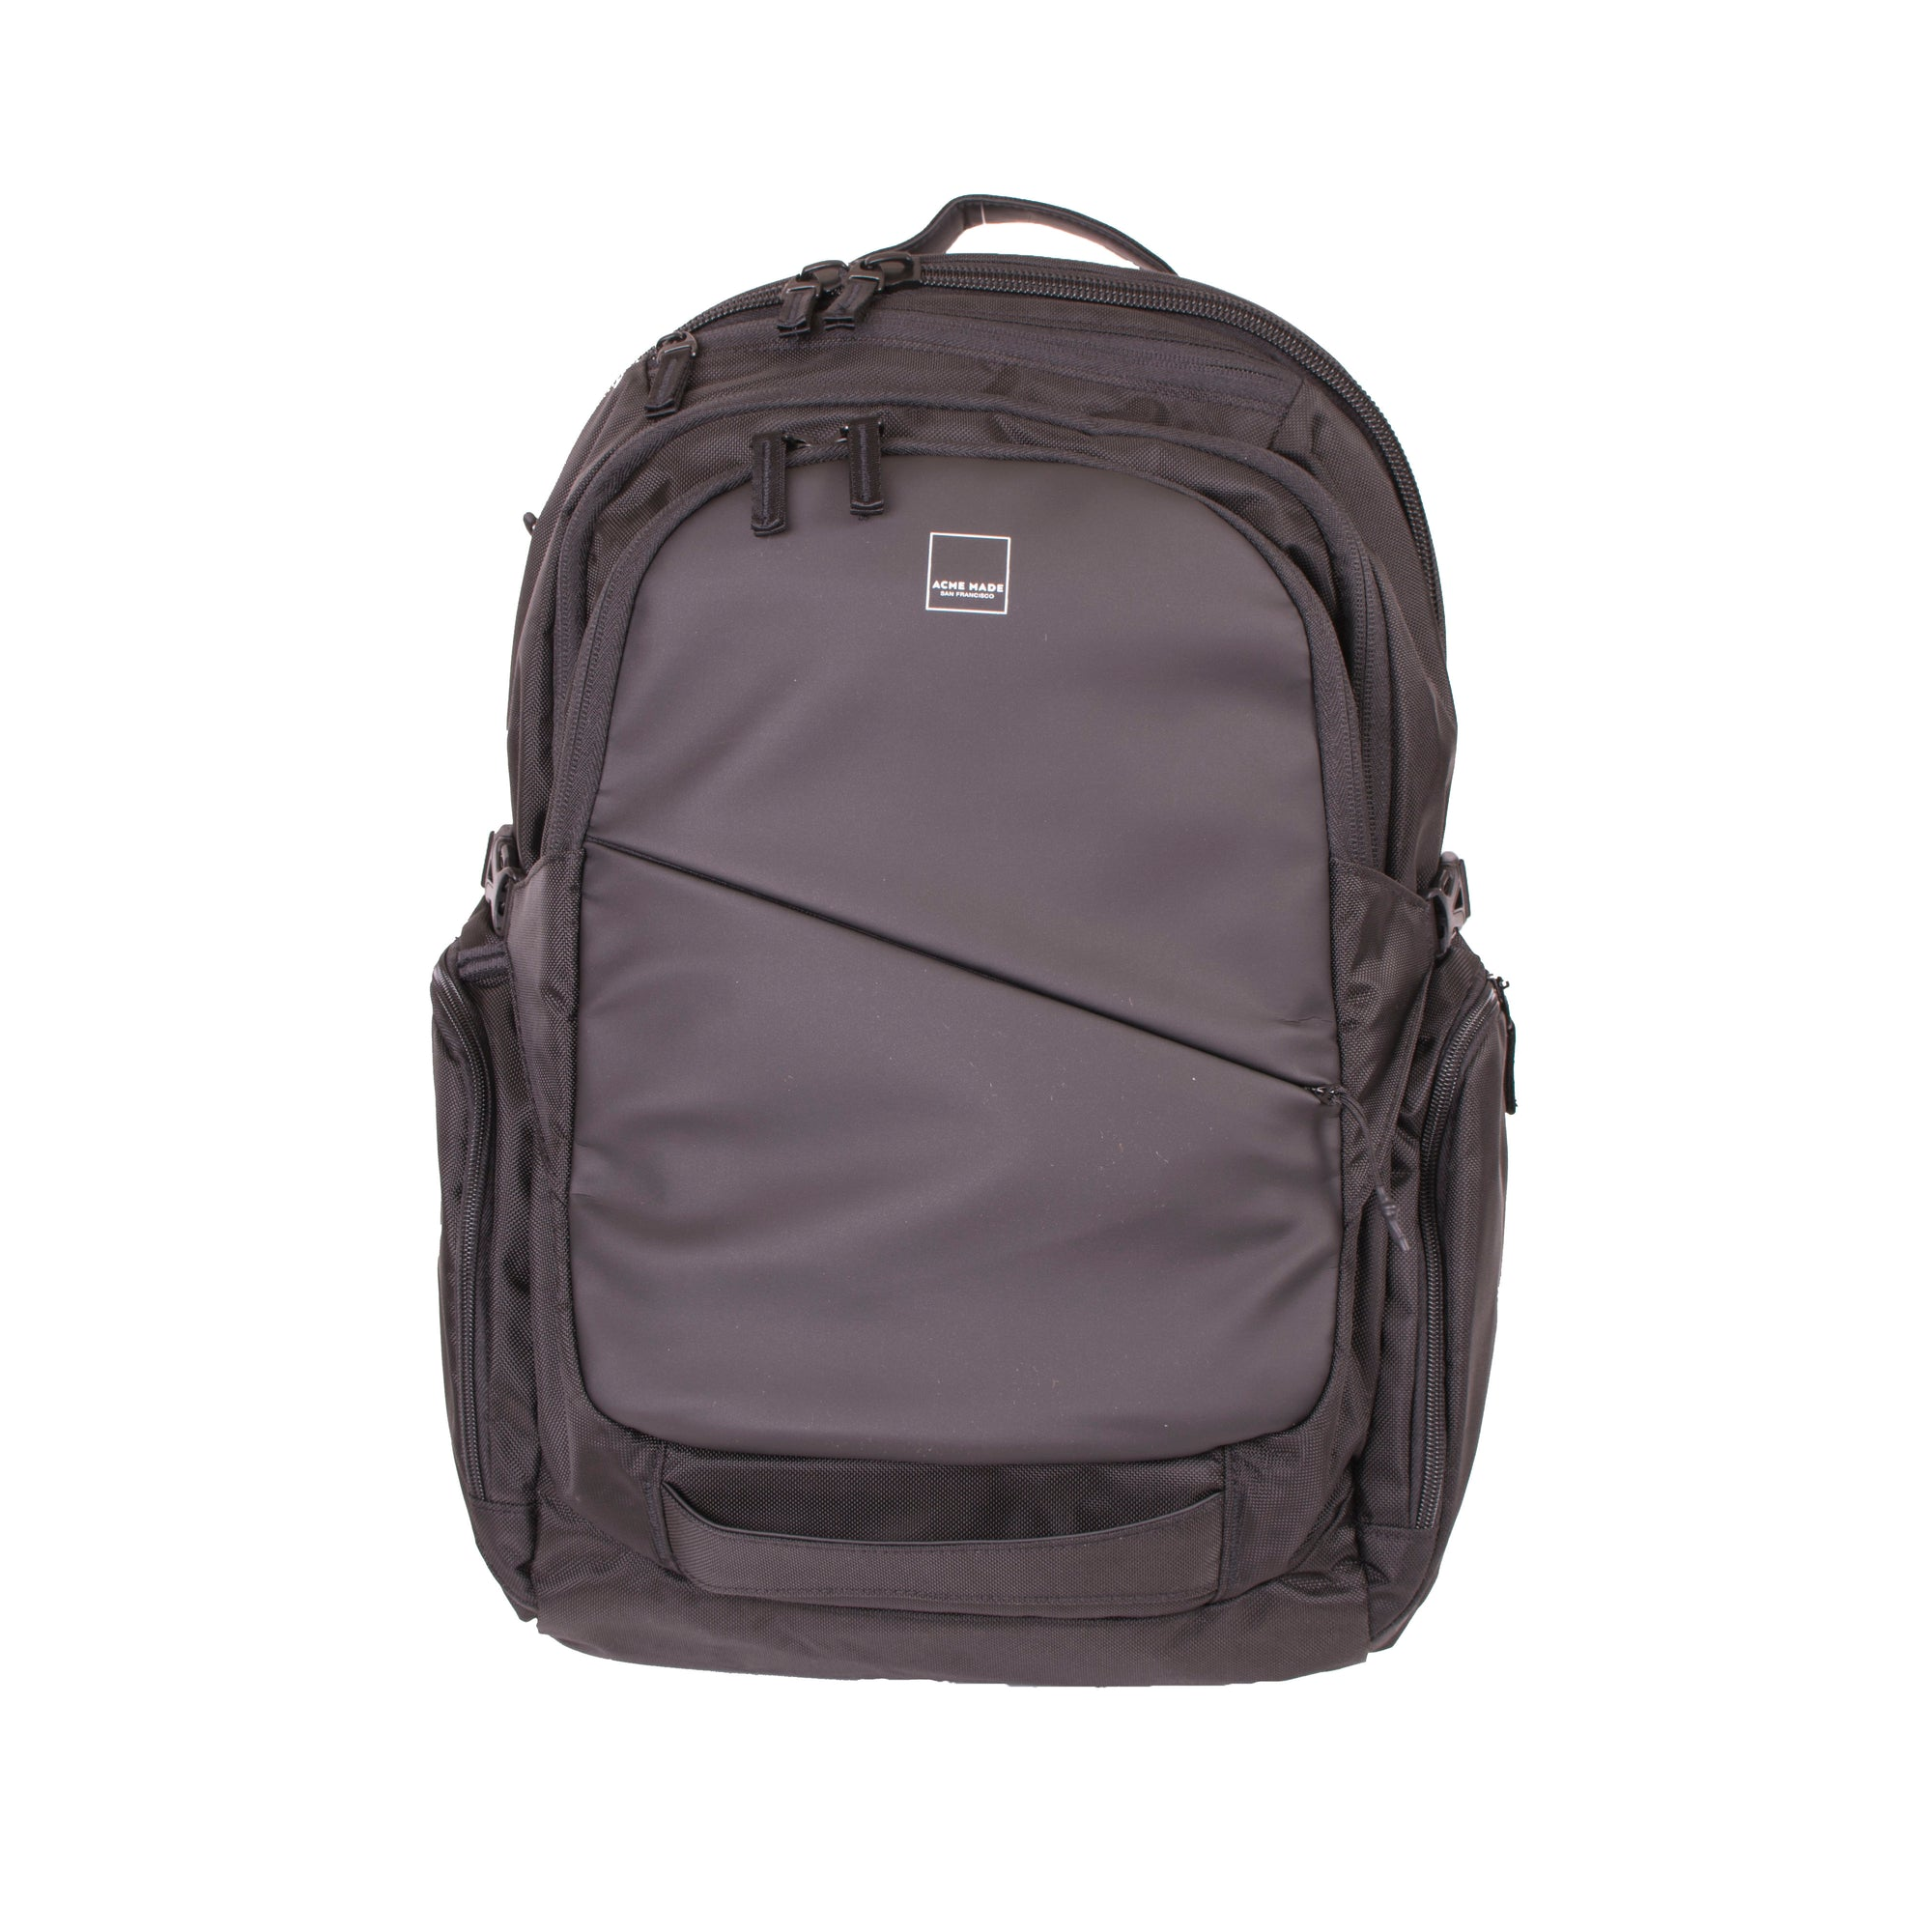 Union Street Traveler Backpack Front